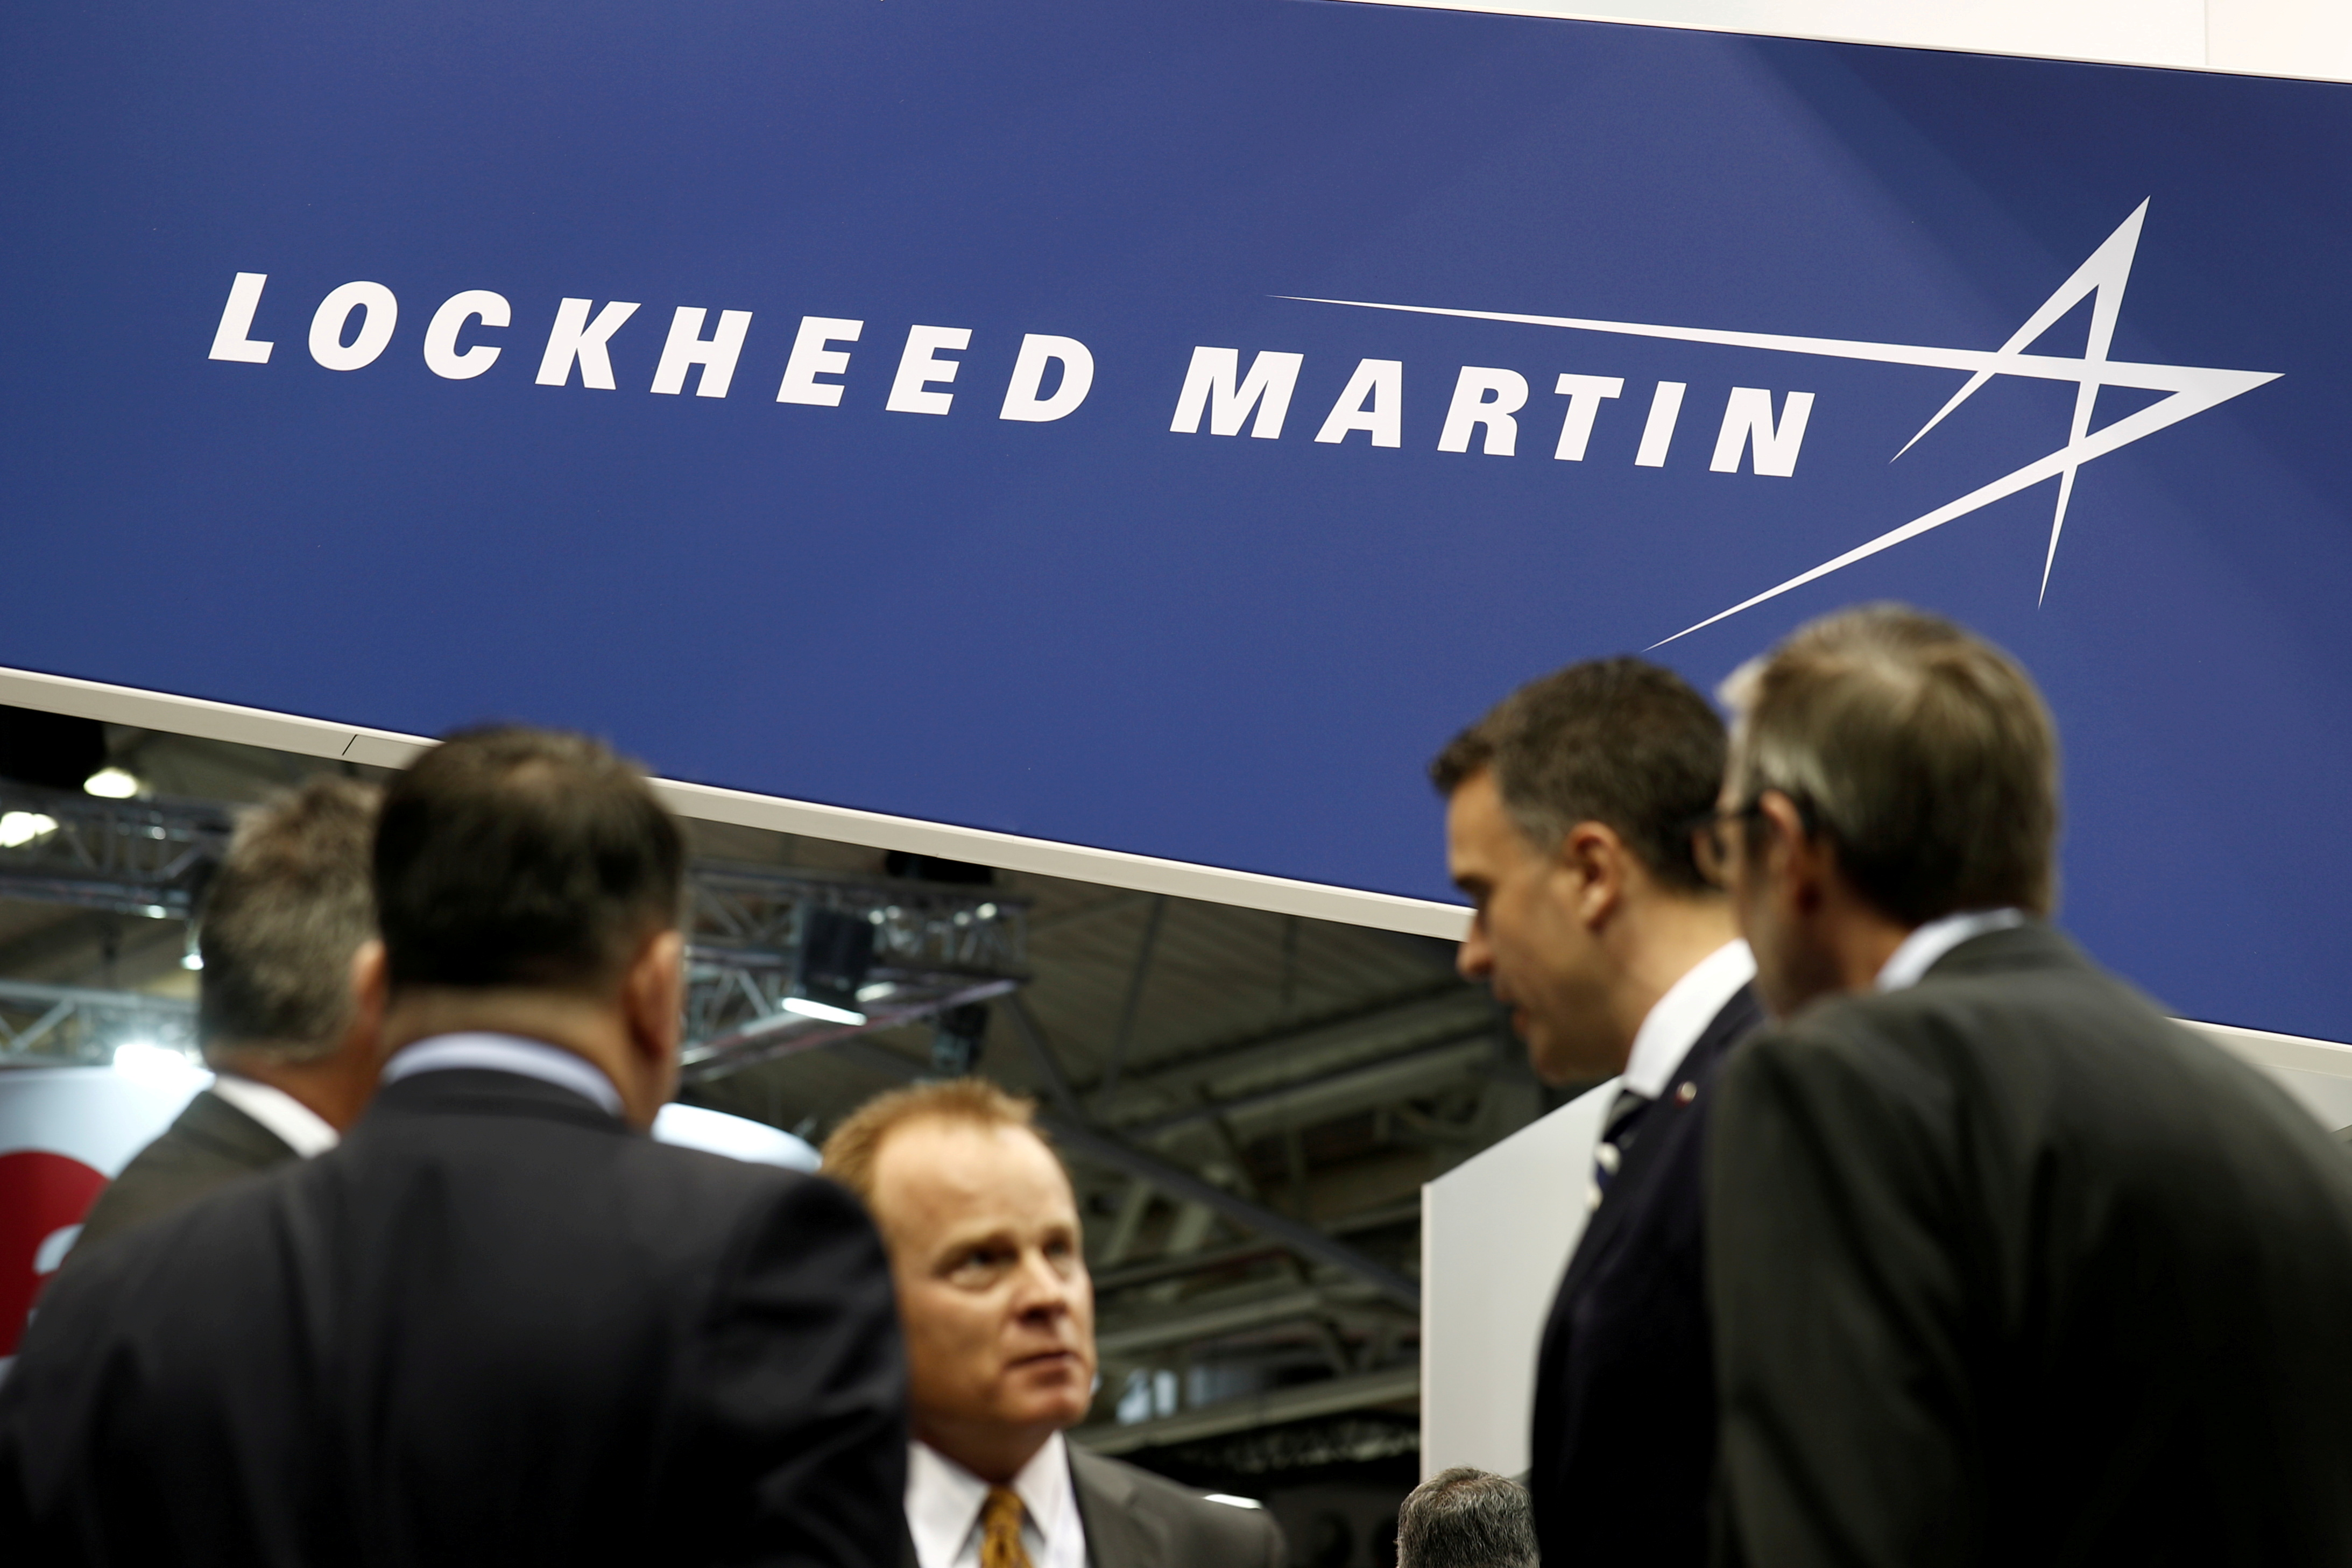 FILE PHOTO: The logo of Lockheed Martin is seen at Euronaval, the world naval defence exhibition in Le Bourget near Paris, France, October 23, 2018. REUTERS/Benoit Tessier/File Photo